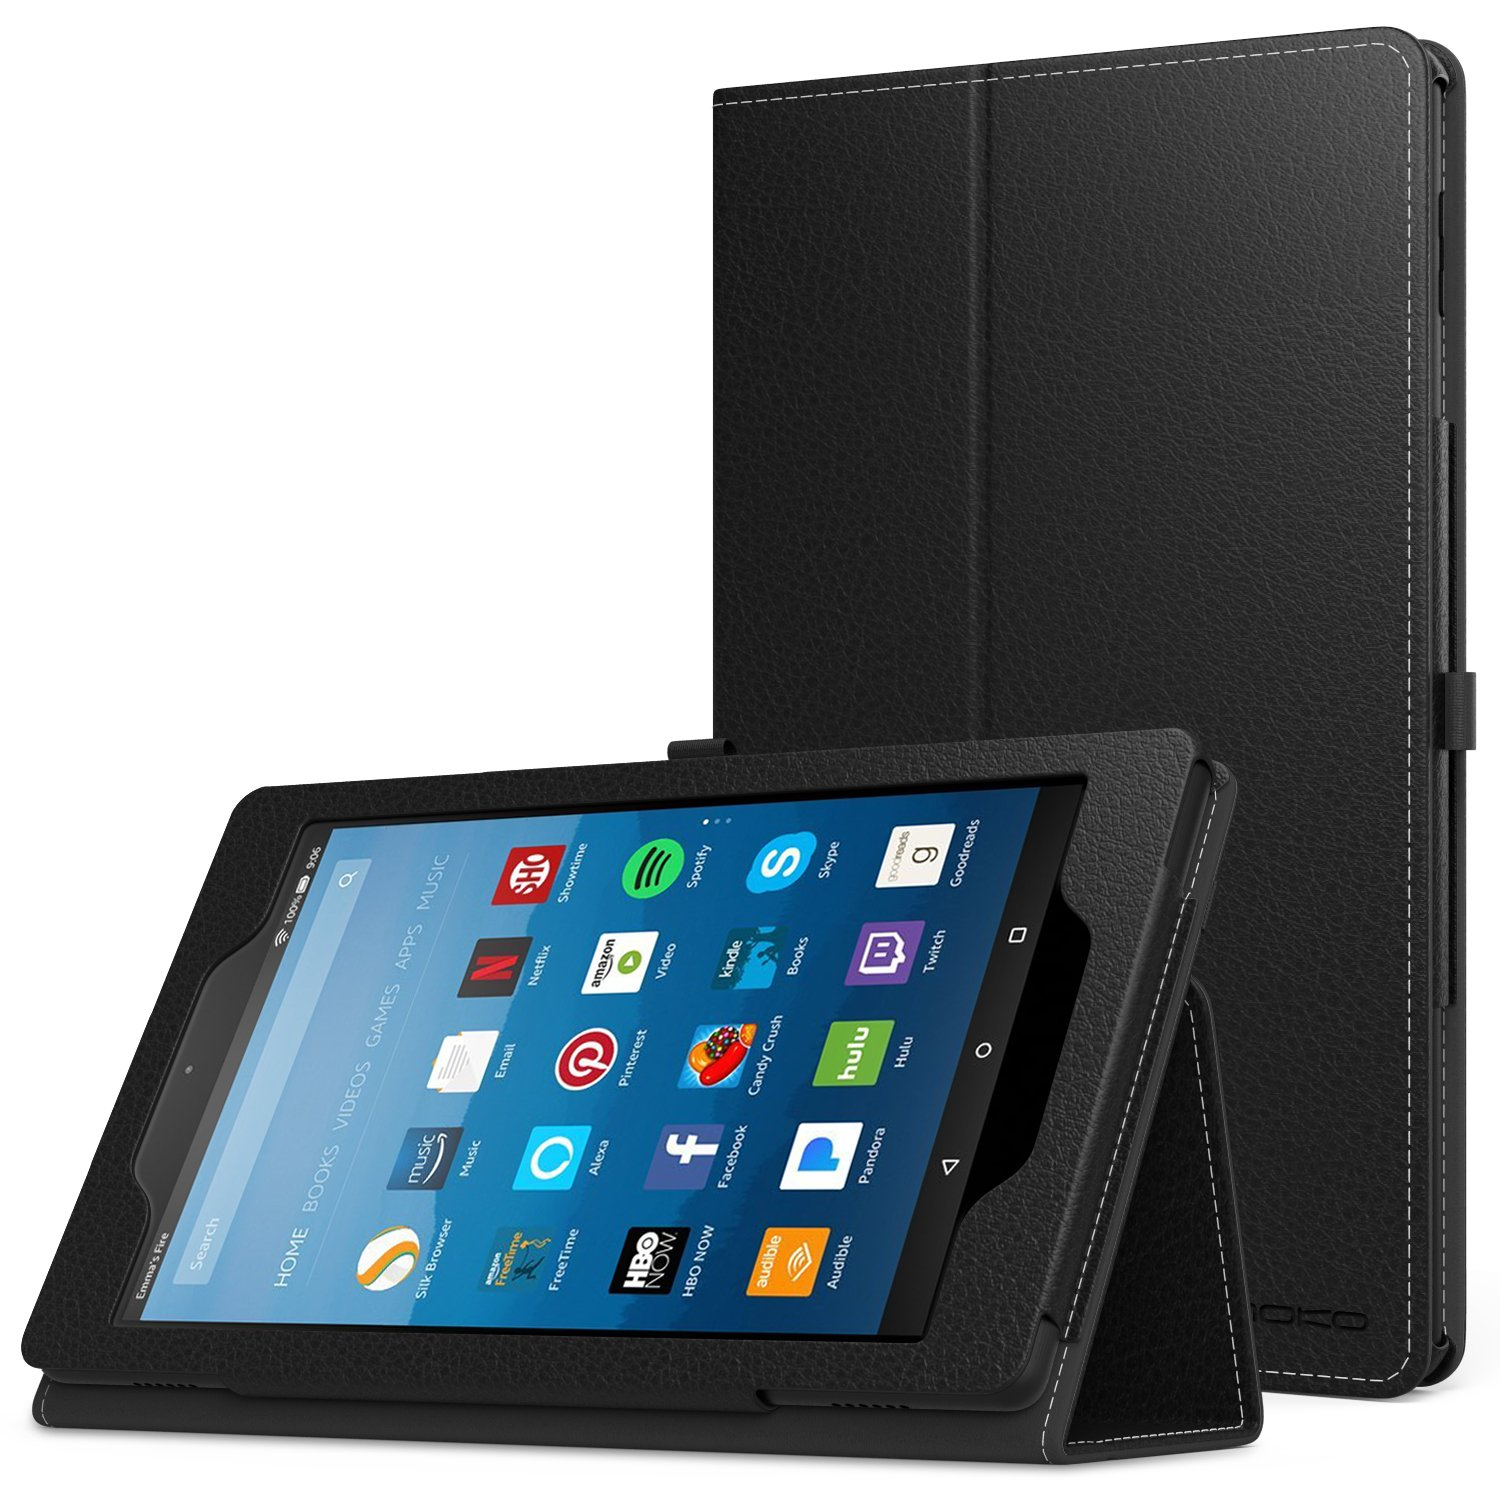 MoKo Case for All-New Amazon Fire HD 8 Tablet (7th Generation, 2017 Release Only) - Slim Folding Stand Cover for Fire HD 8, BLACK (with Auto Wake / Sleep)